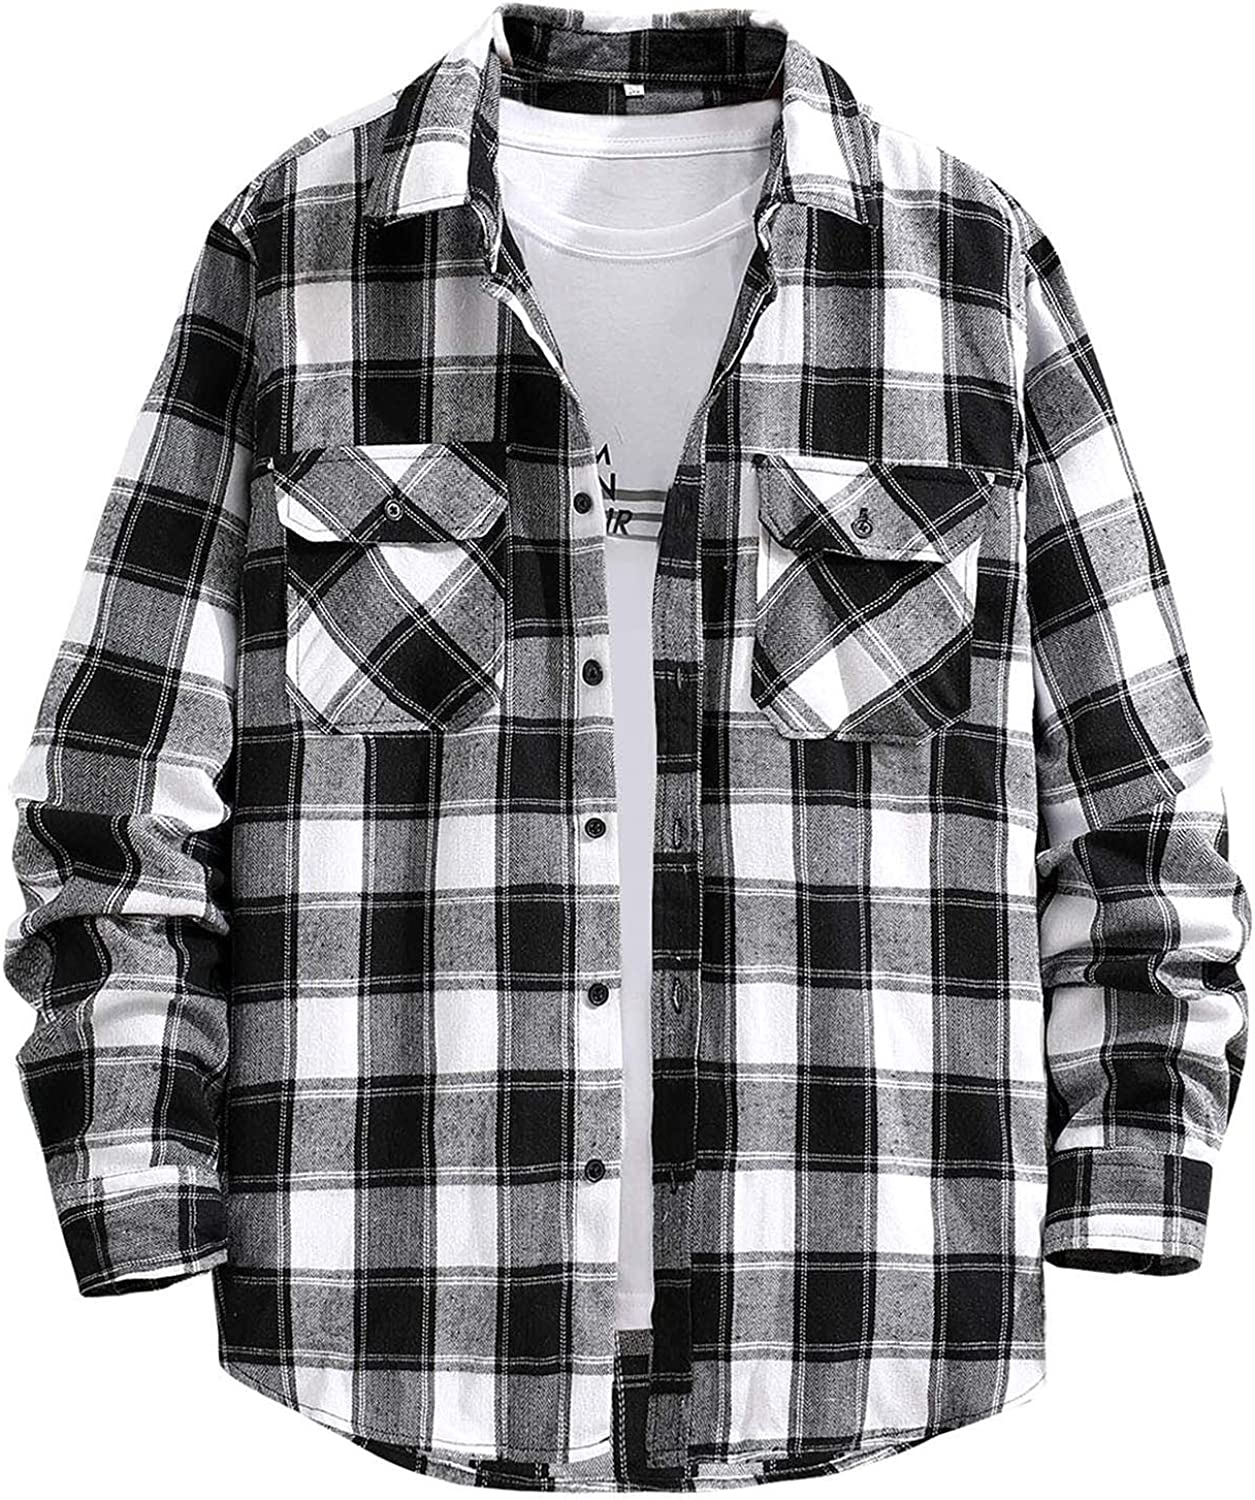 UBST Checked Shirts for Mens, Fall Button Down Long Sleeve Plaid Brushed Loose Tops Thick Casual Shirt with Pockets